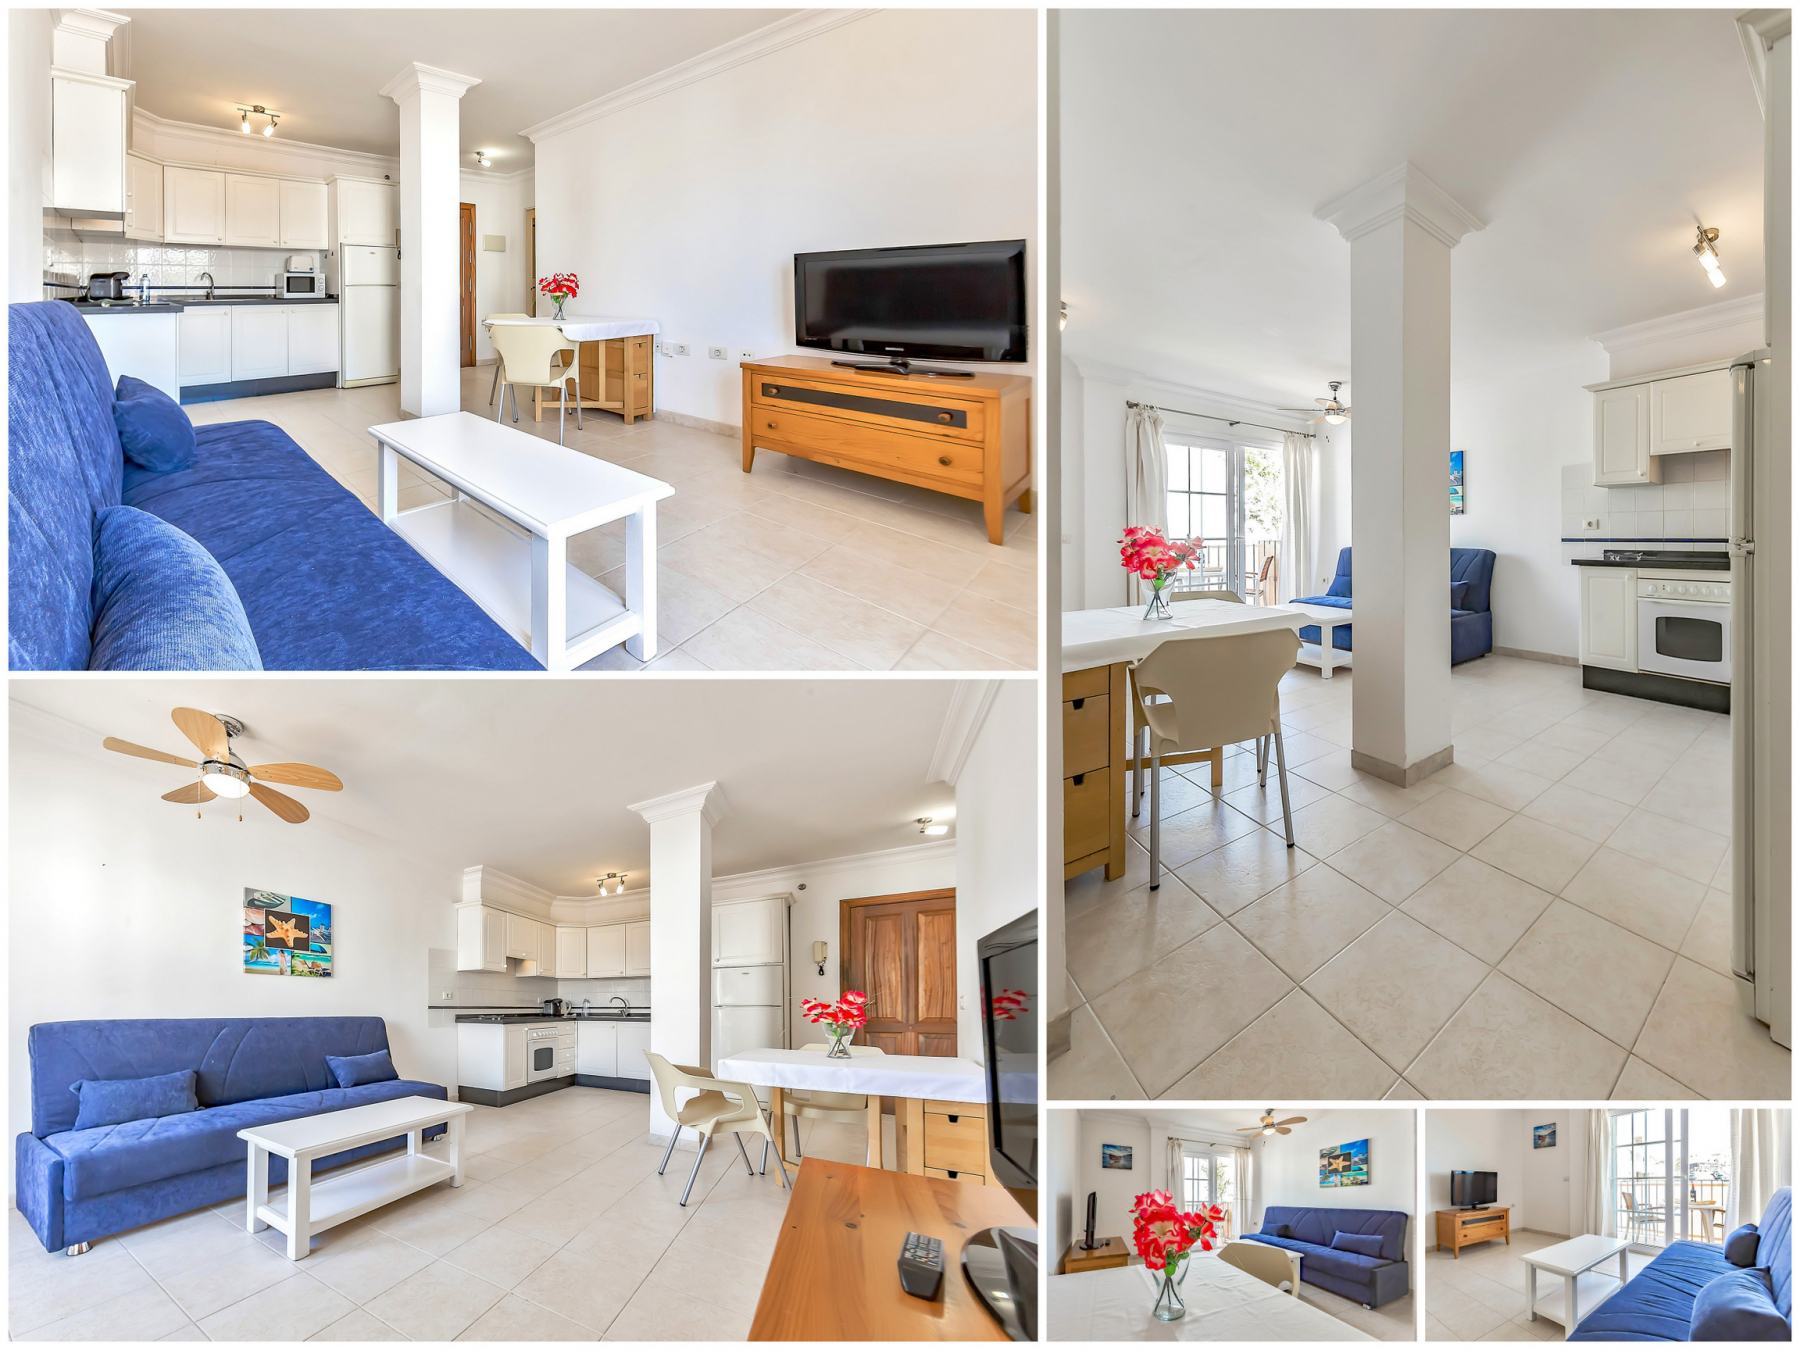 Properties for Sale in Tenerife, Canary Islands, Spain | SylkWayStar Real Estate. EXCLUSIVE OFFER. Image-26353